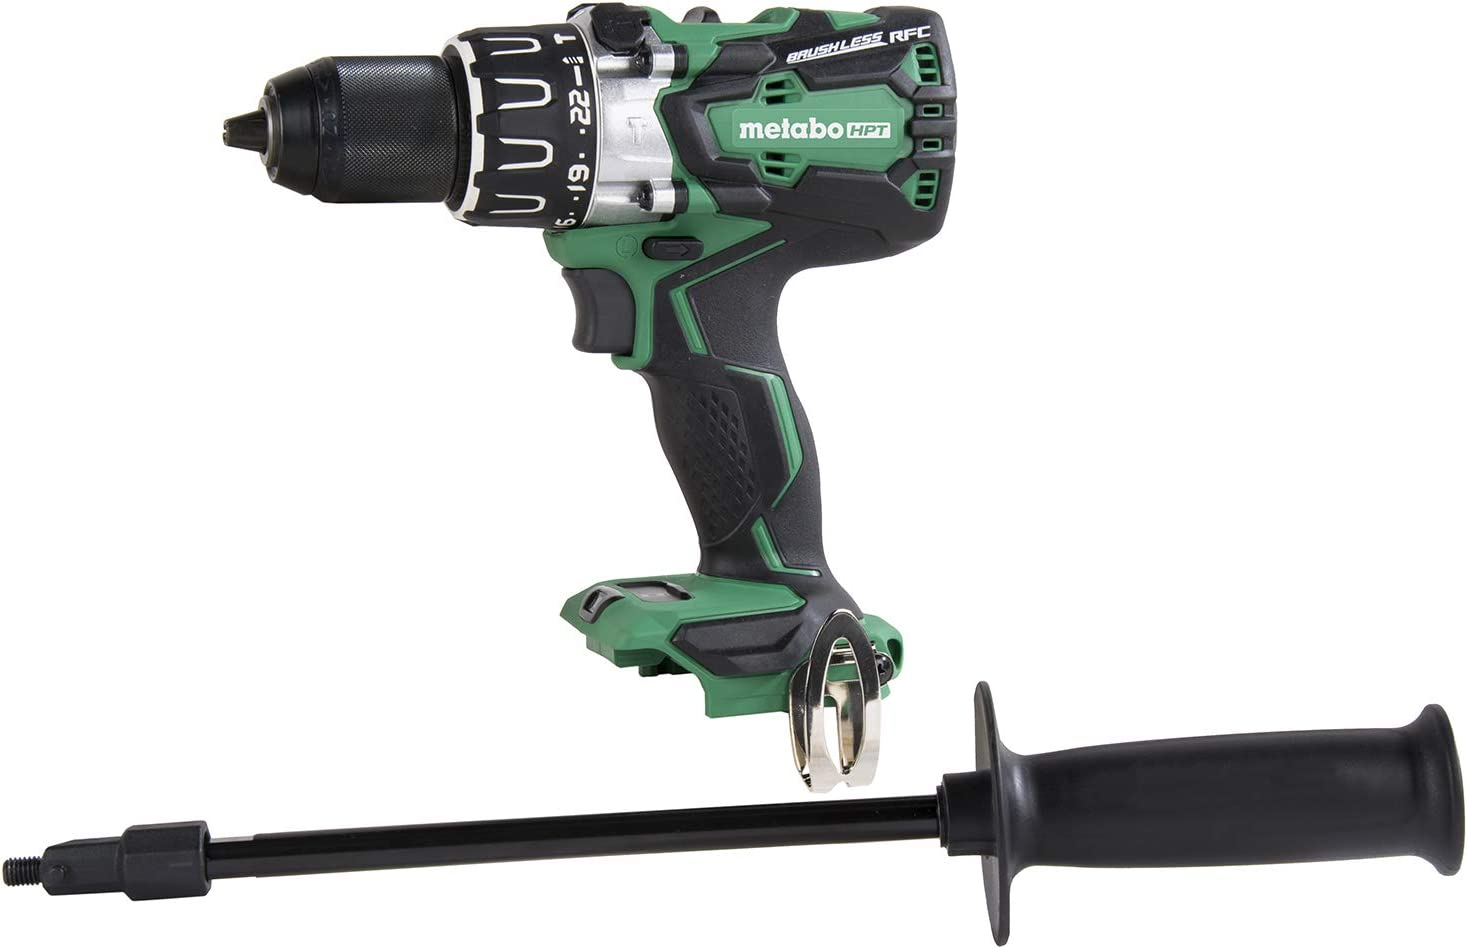 Metabo HPT 18V Cordless Brushless Hammer Drill, Tool Only - No Battery, Compatible with Hitachi/Metabo HPT 18V Lithium Ion Slide-Type Batteries, Lifetime Tool Warranty (DV18DBL2Q4)